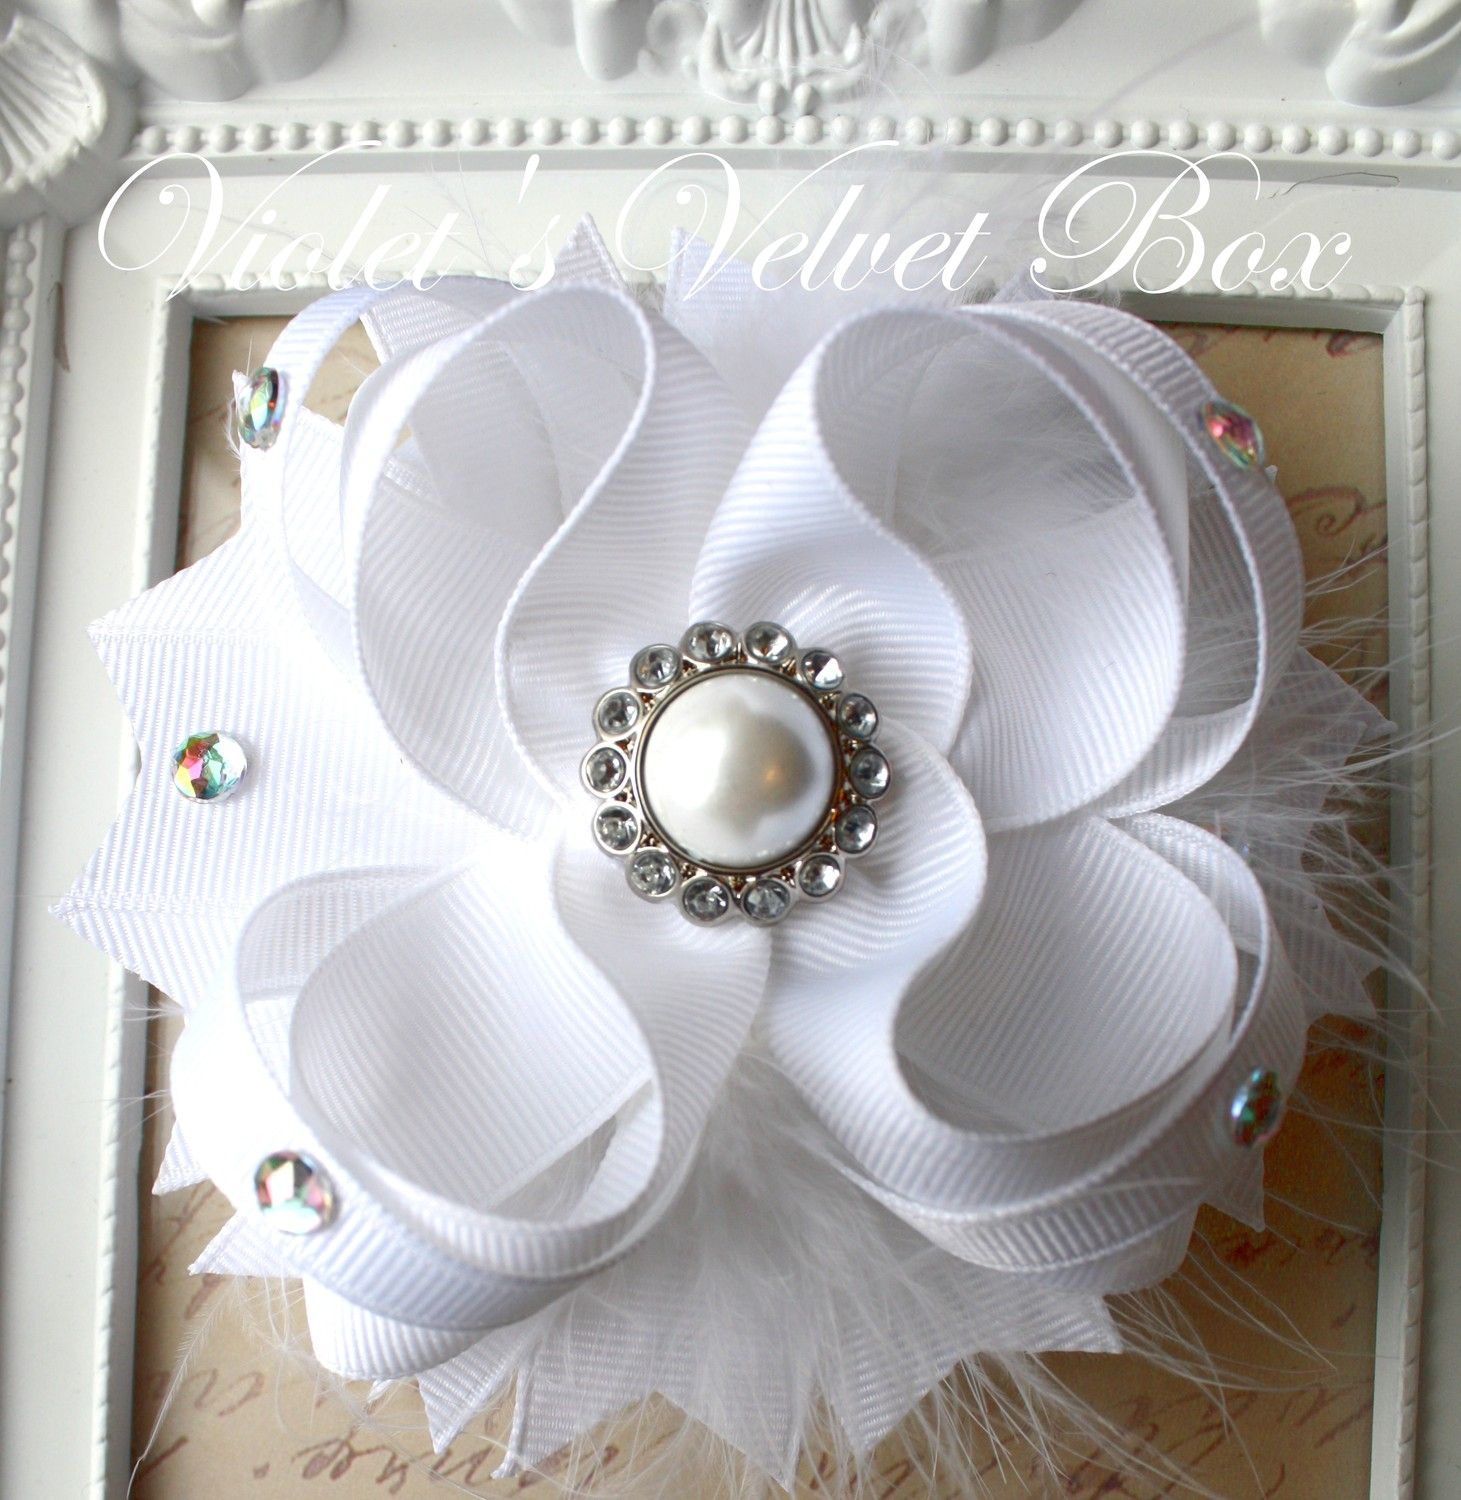 Wedding White Hair Bow -Luxurious Boutique Bow with Pearls Baptism Christening First Communion. $8.99, via Etsy.